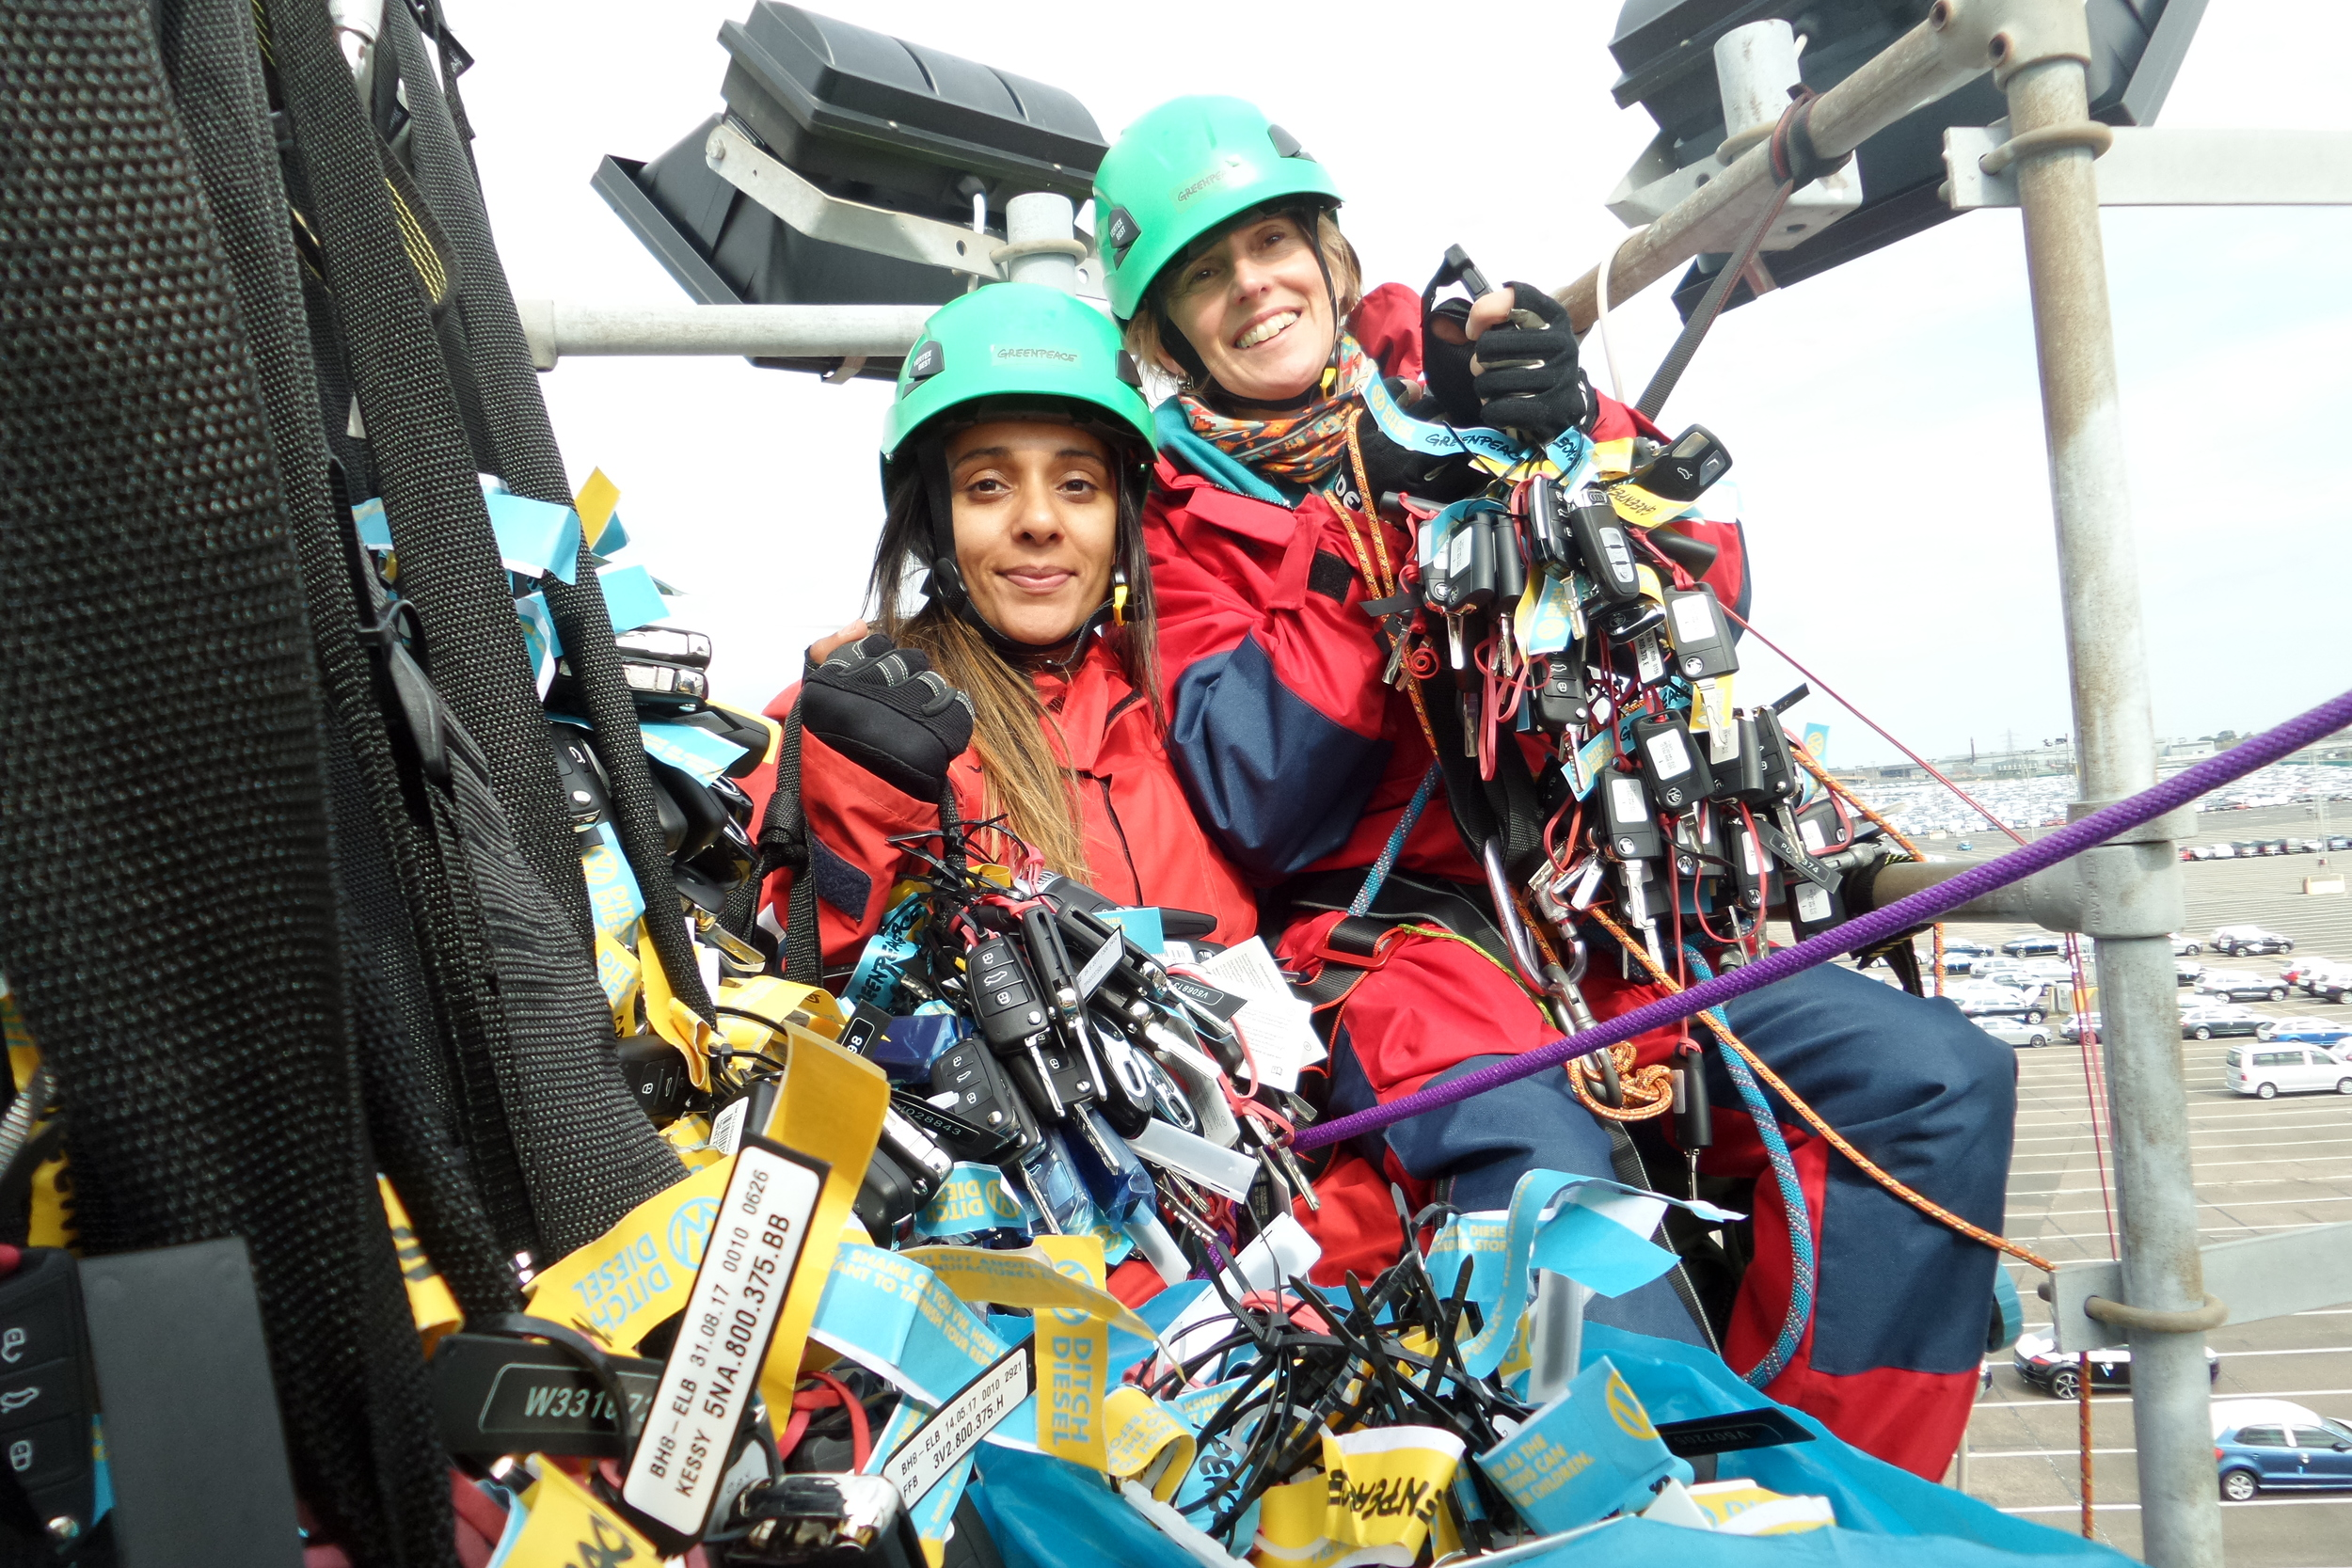 Meena and a white woman in climbing gear holding hundreds of car keys on a platform high over a dockside car park